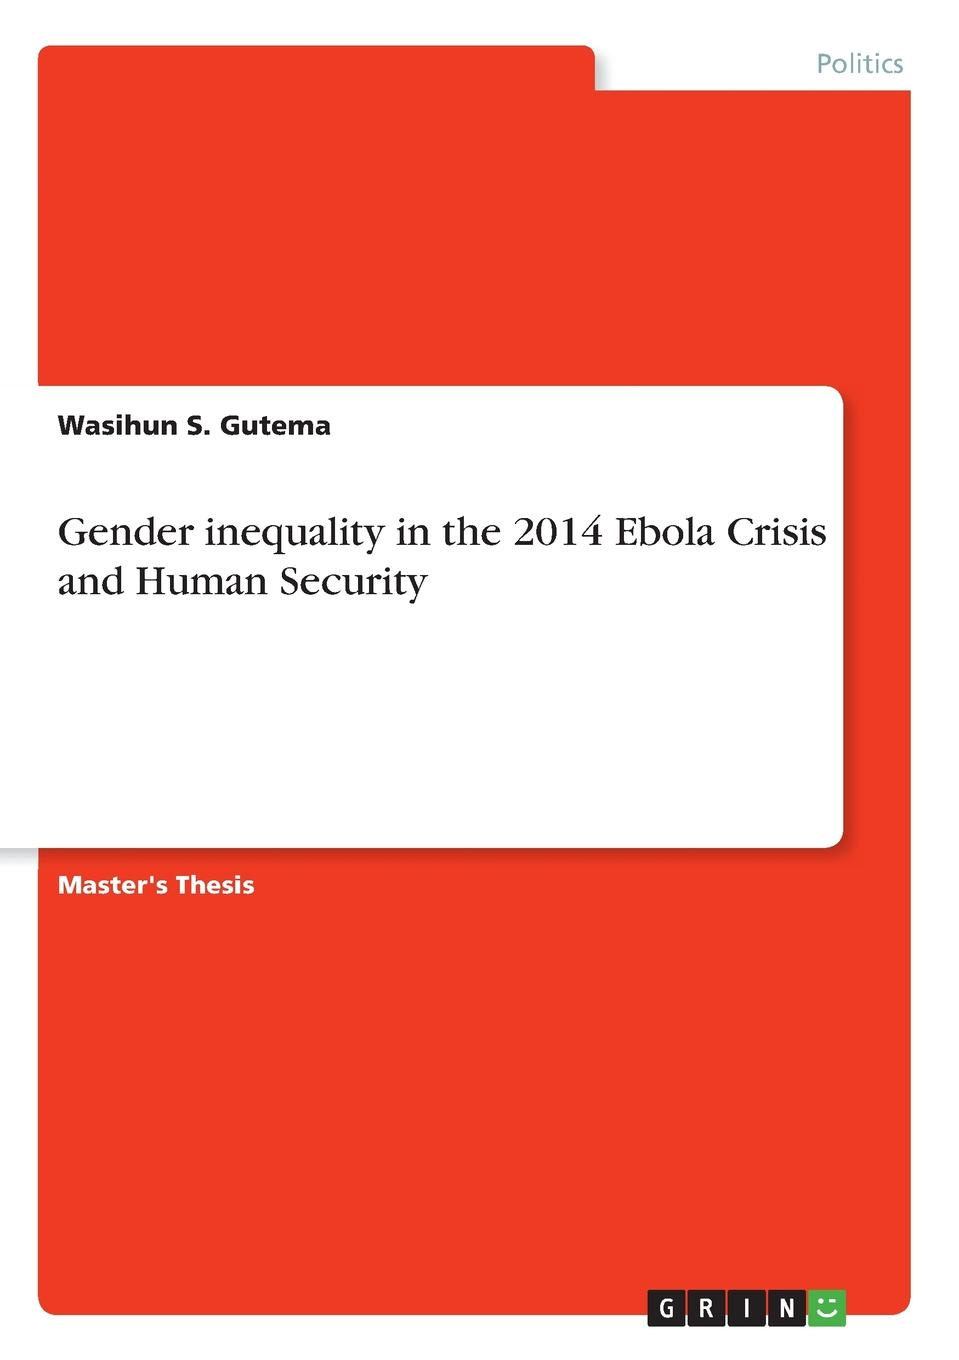 Wasihun S. Gutema Gender inequality in the 2014 Ebola Crisis and Human Security nicole detraz international security and gender